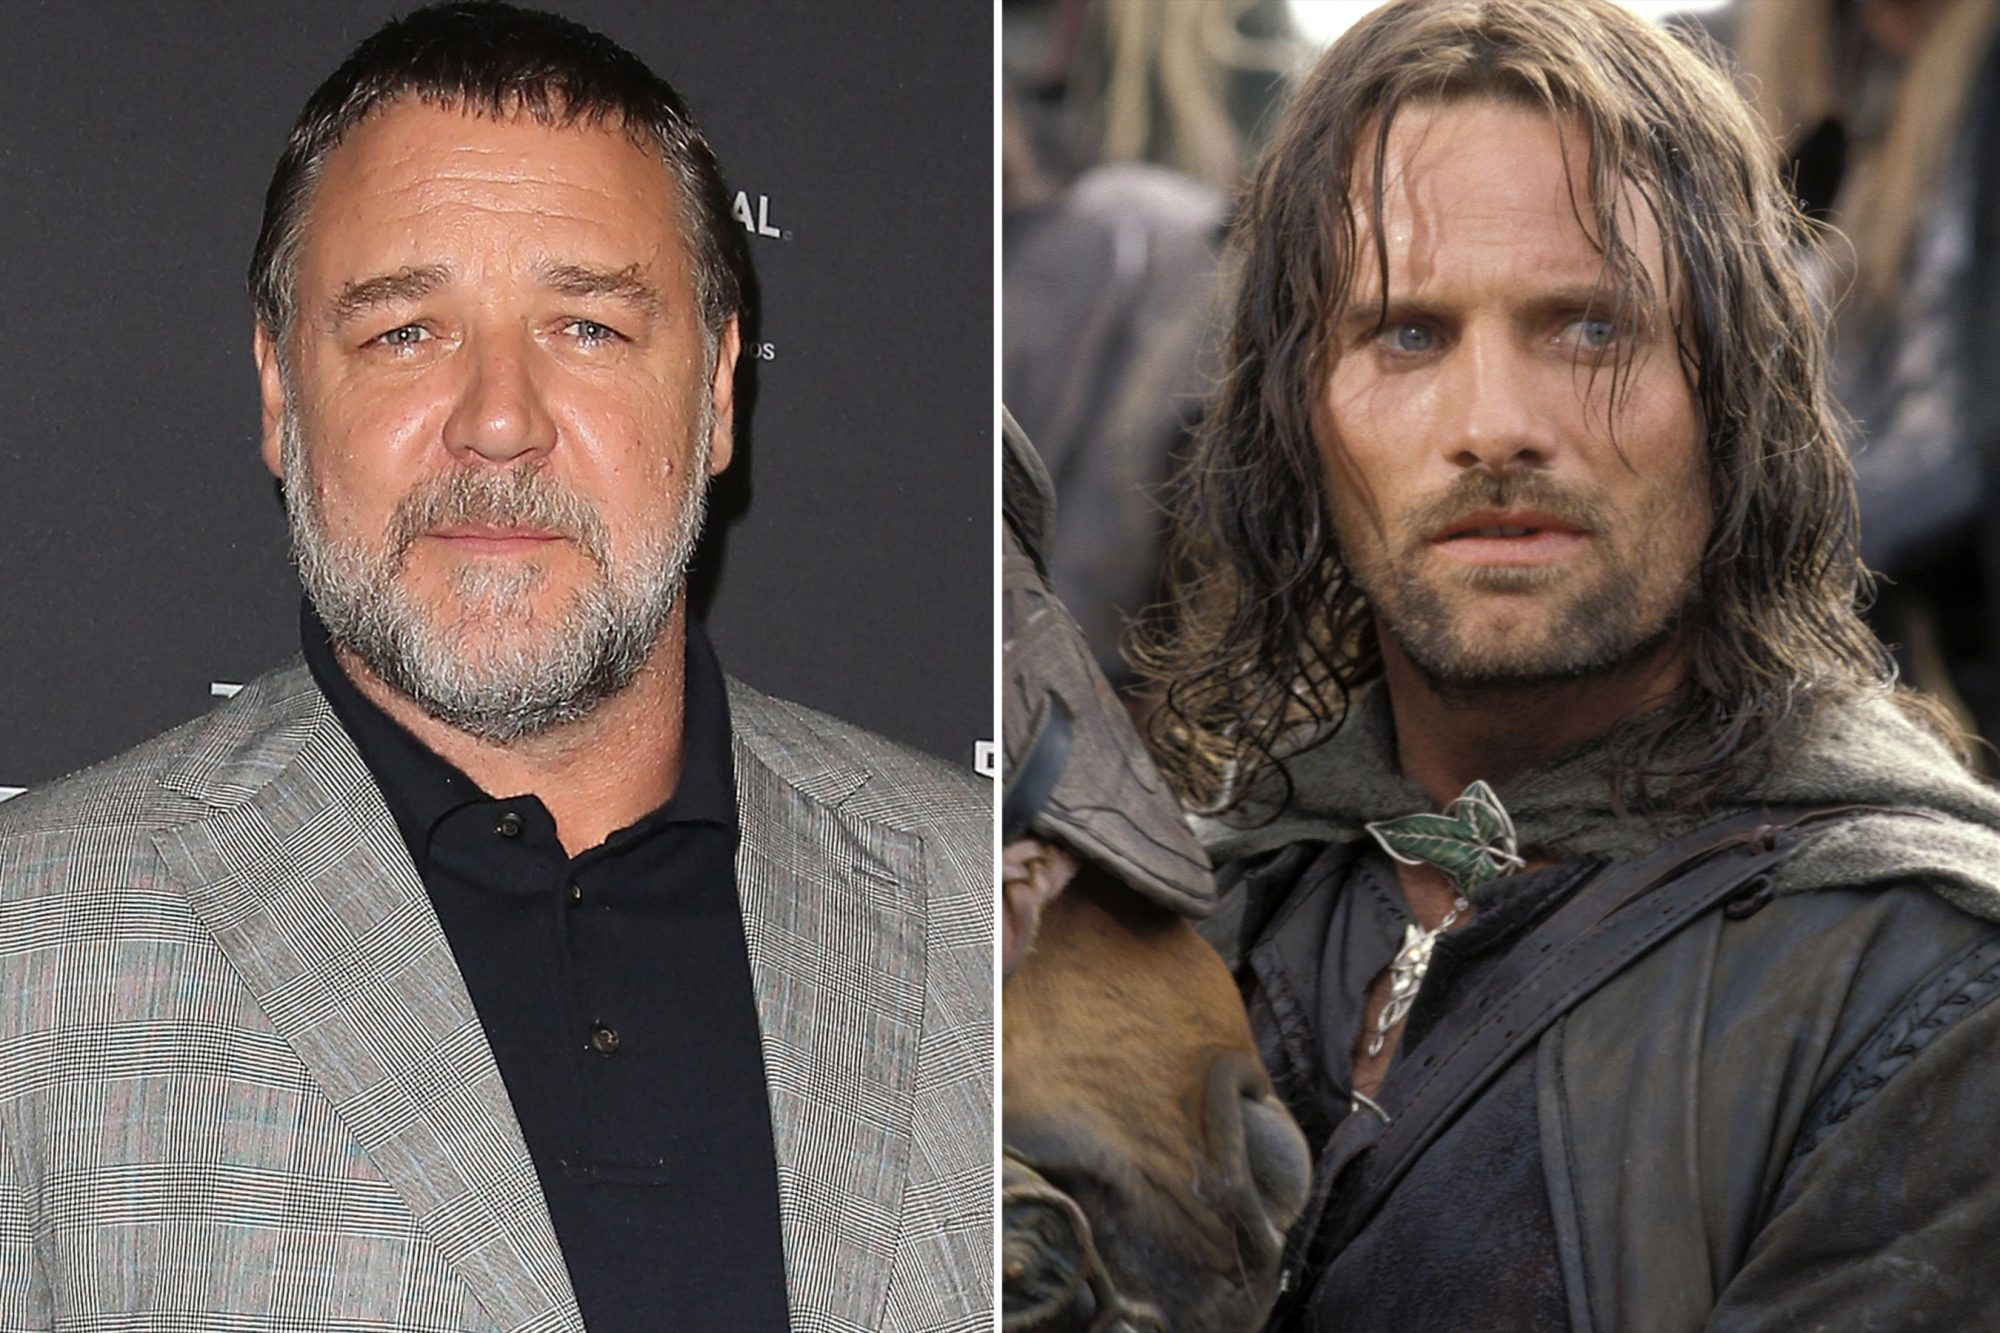 Russell Crowe and Viggo Mortensen ( Lord of the Rings)